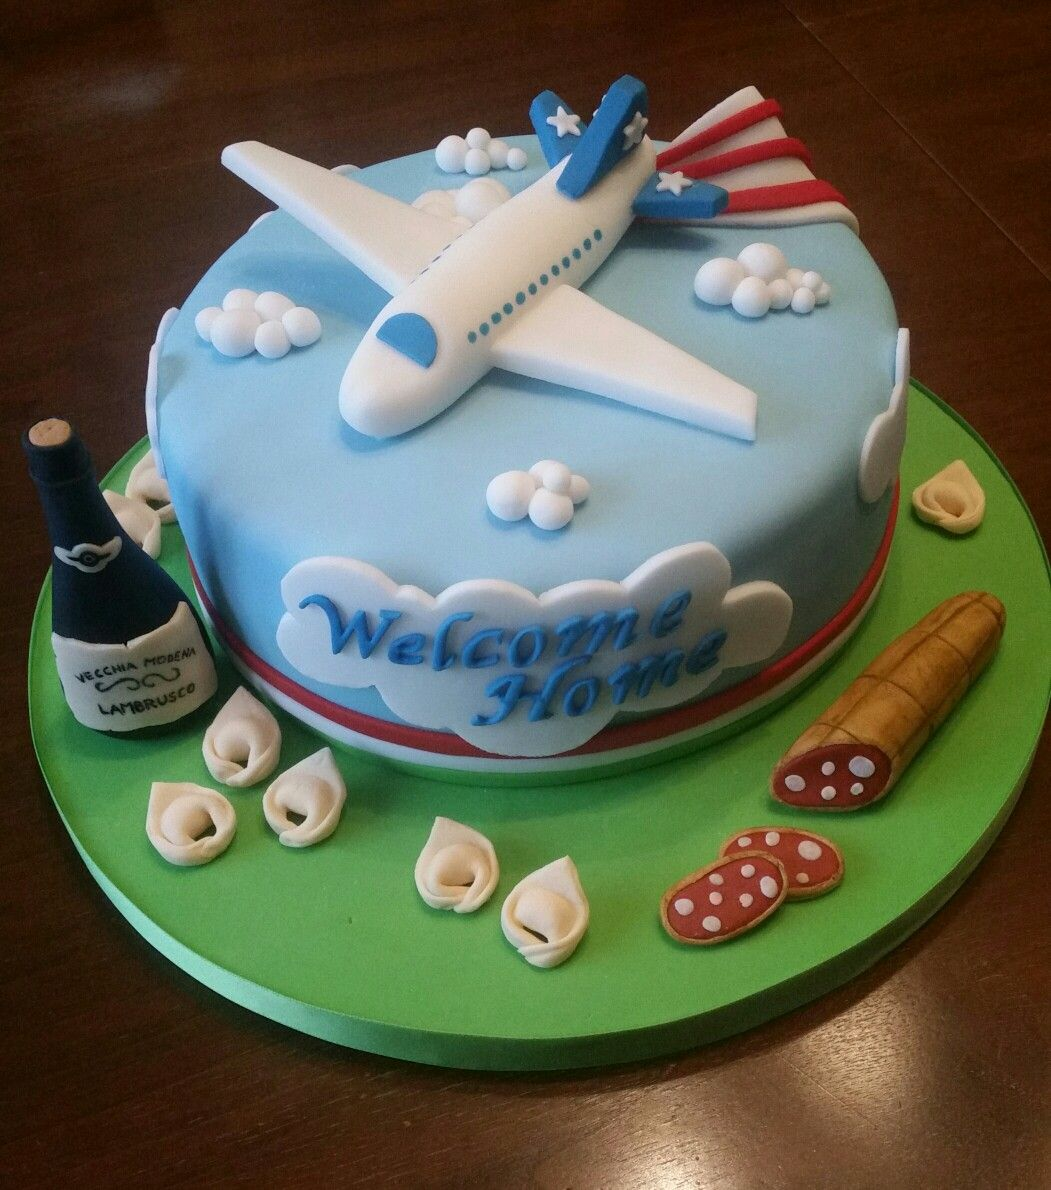 Home Cake Decorating: Welcome Home Cakes, Cake Decorating, Cake